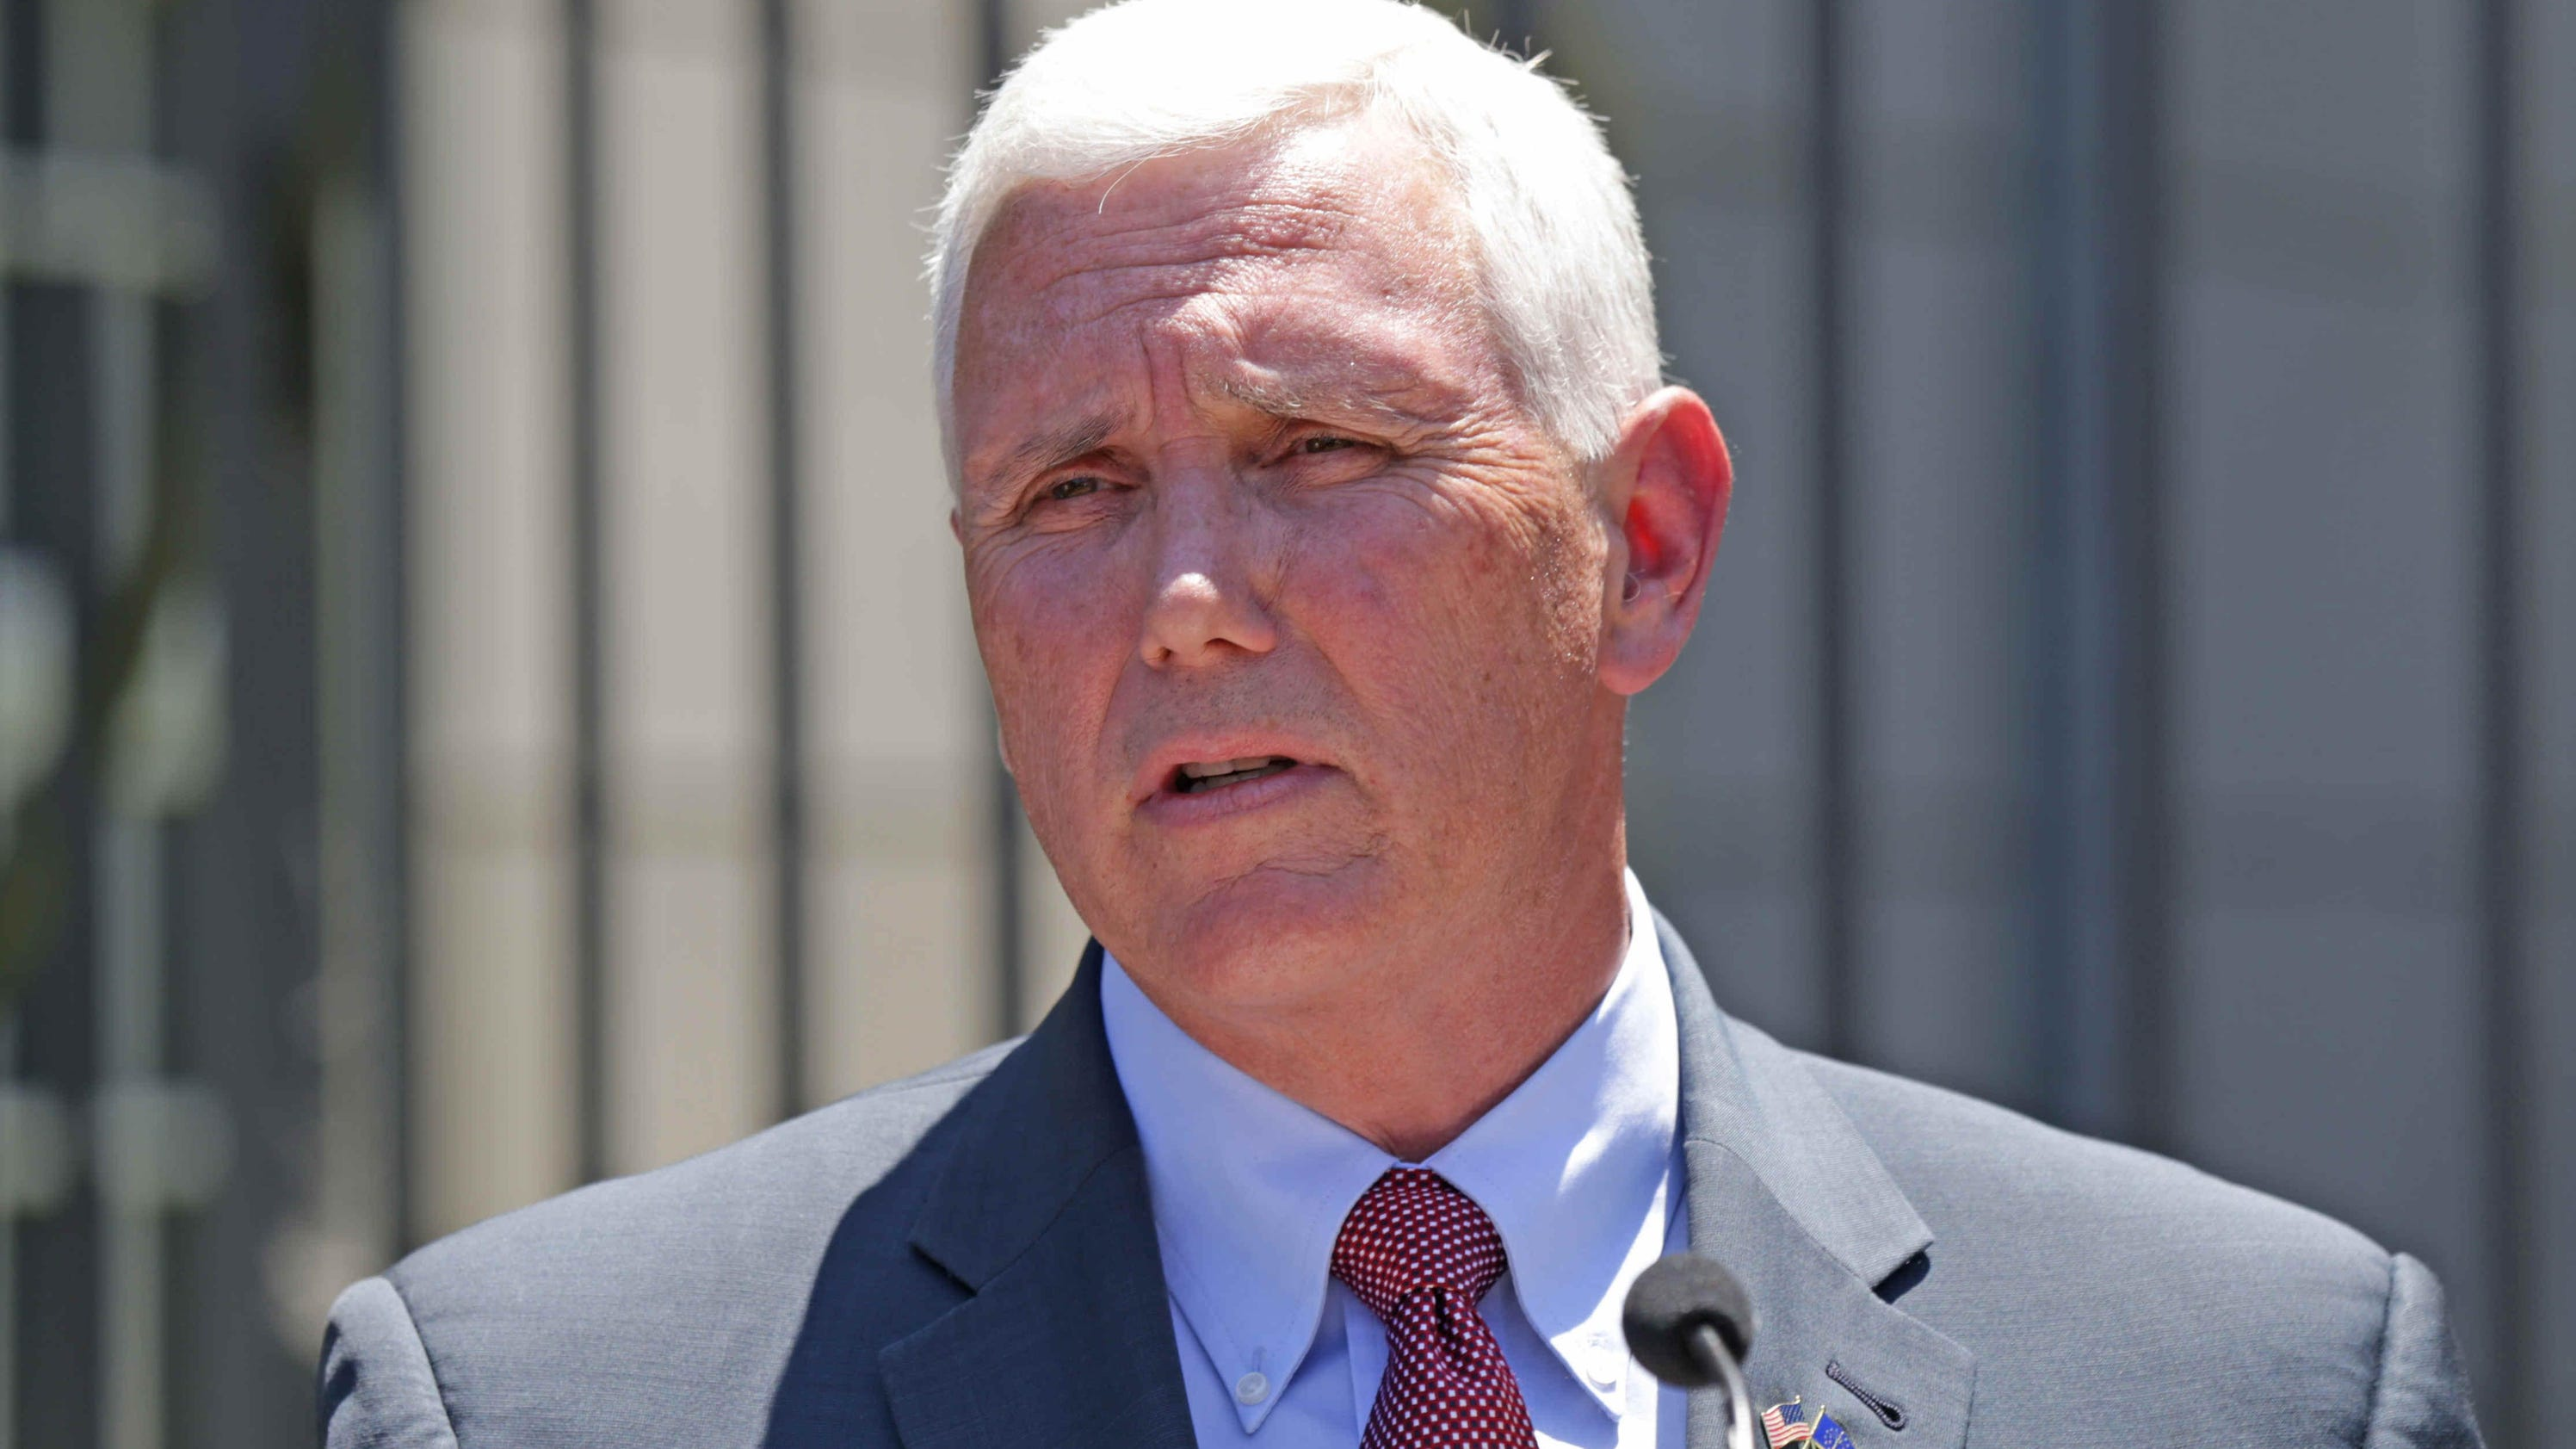 story news politics what know mike pences position rights